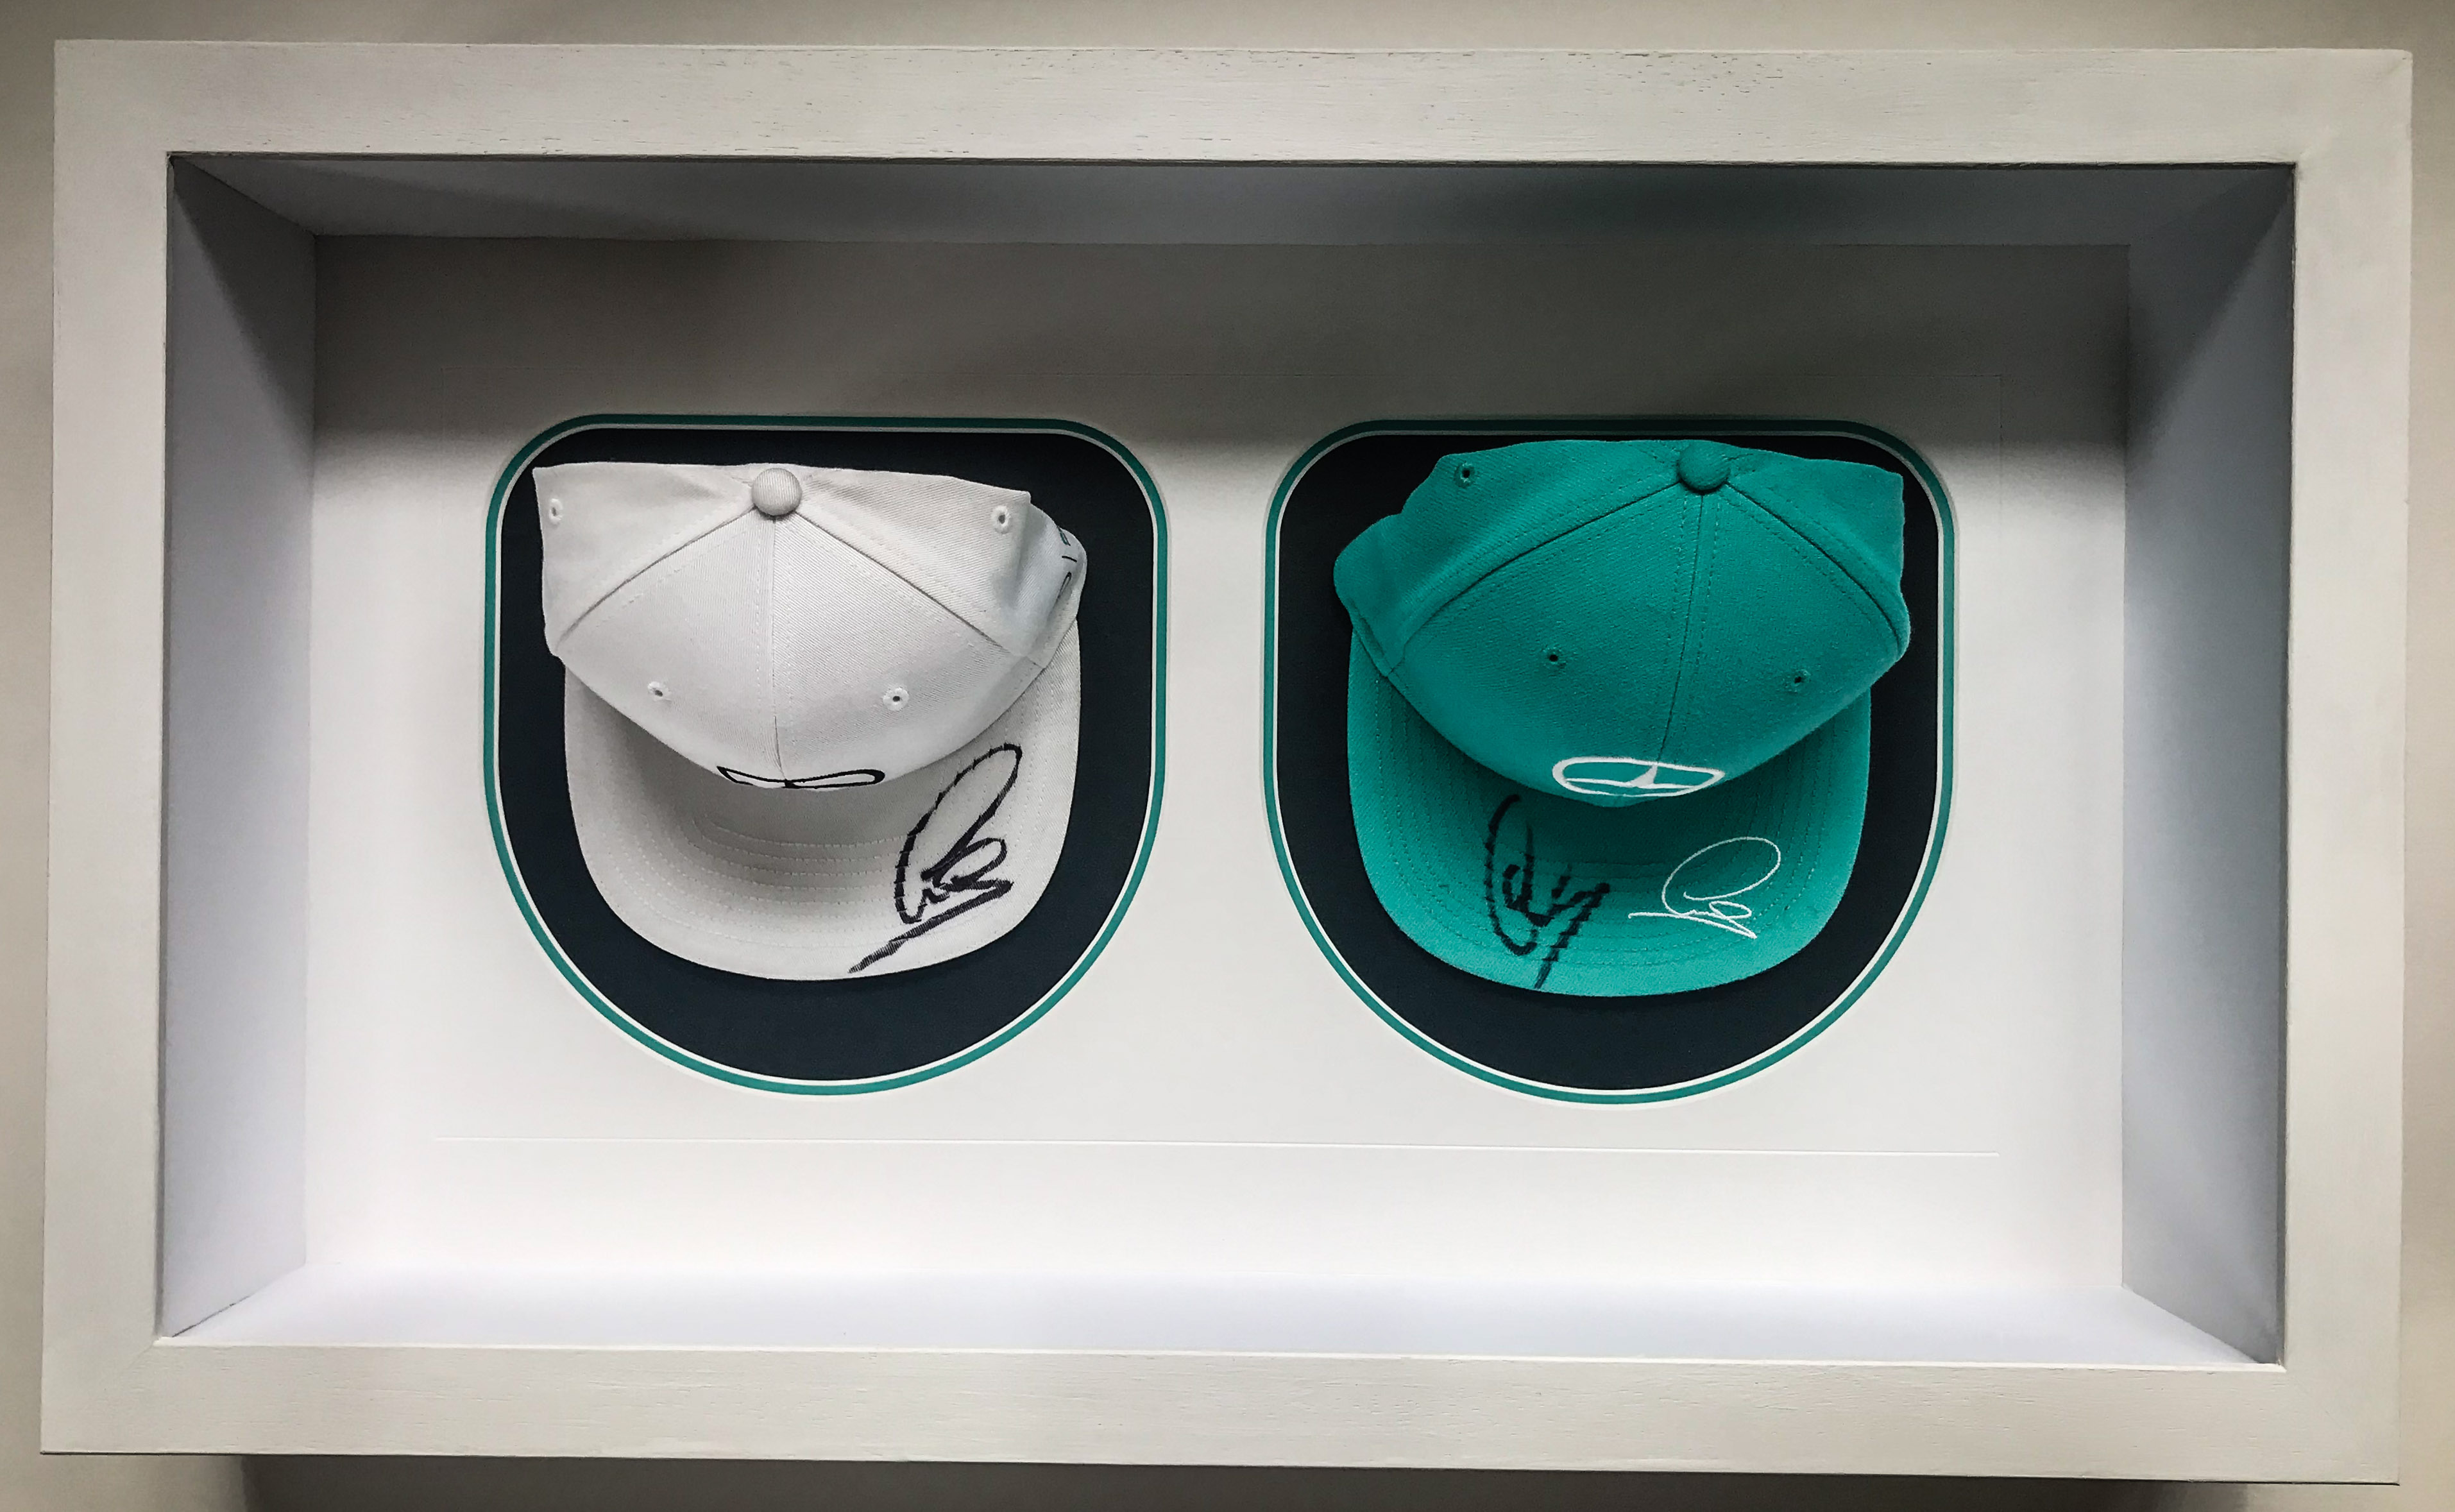 Signed Lewis Hamilton caps | Framed by Jules Sainter of Lovingly Framed